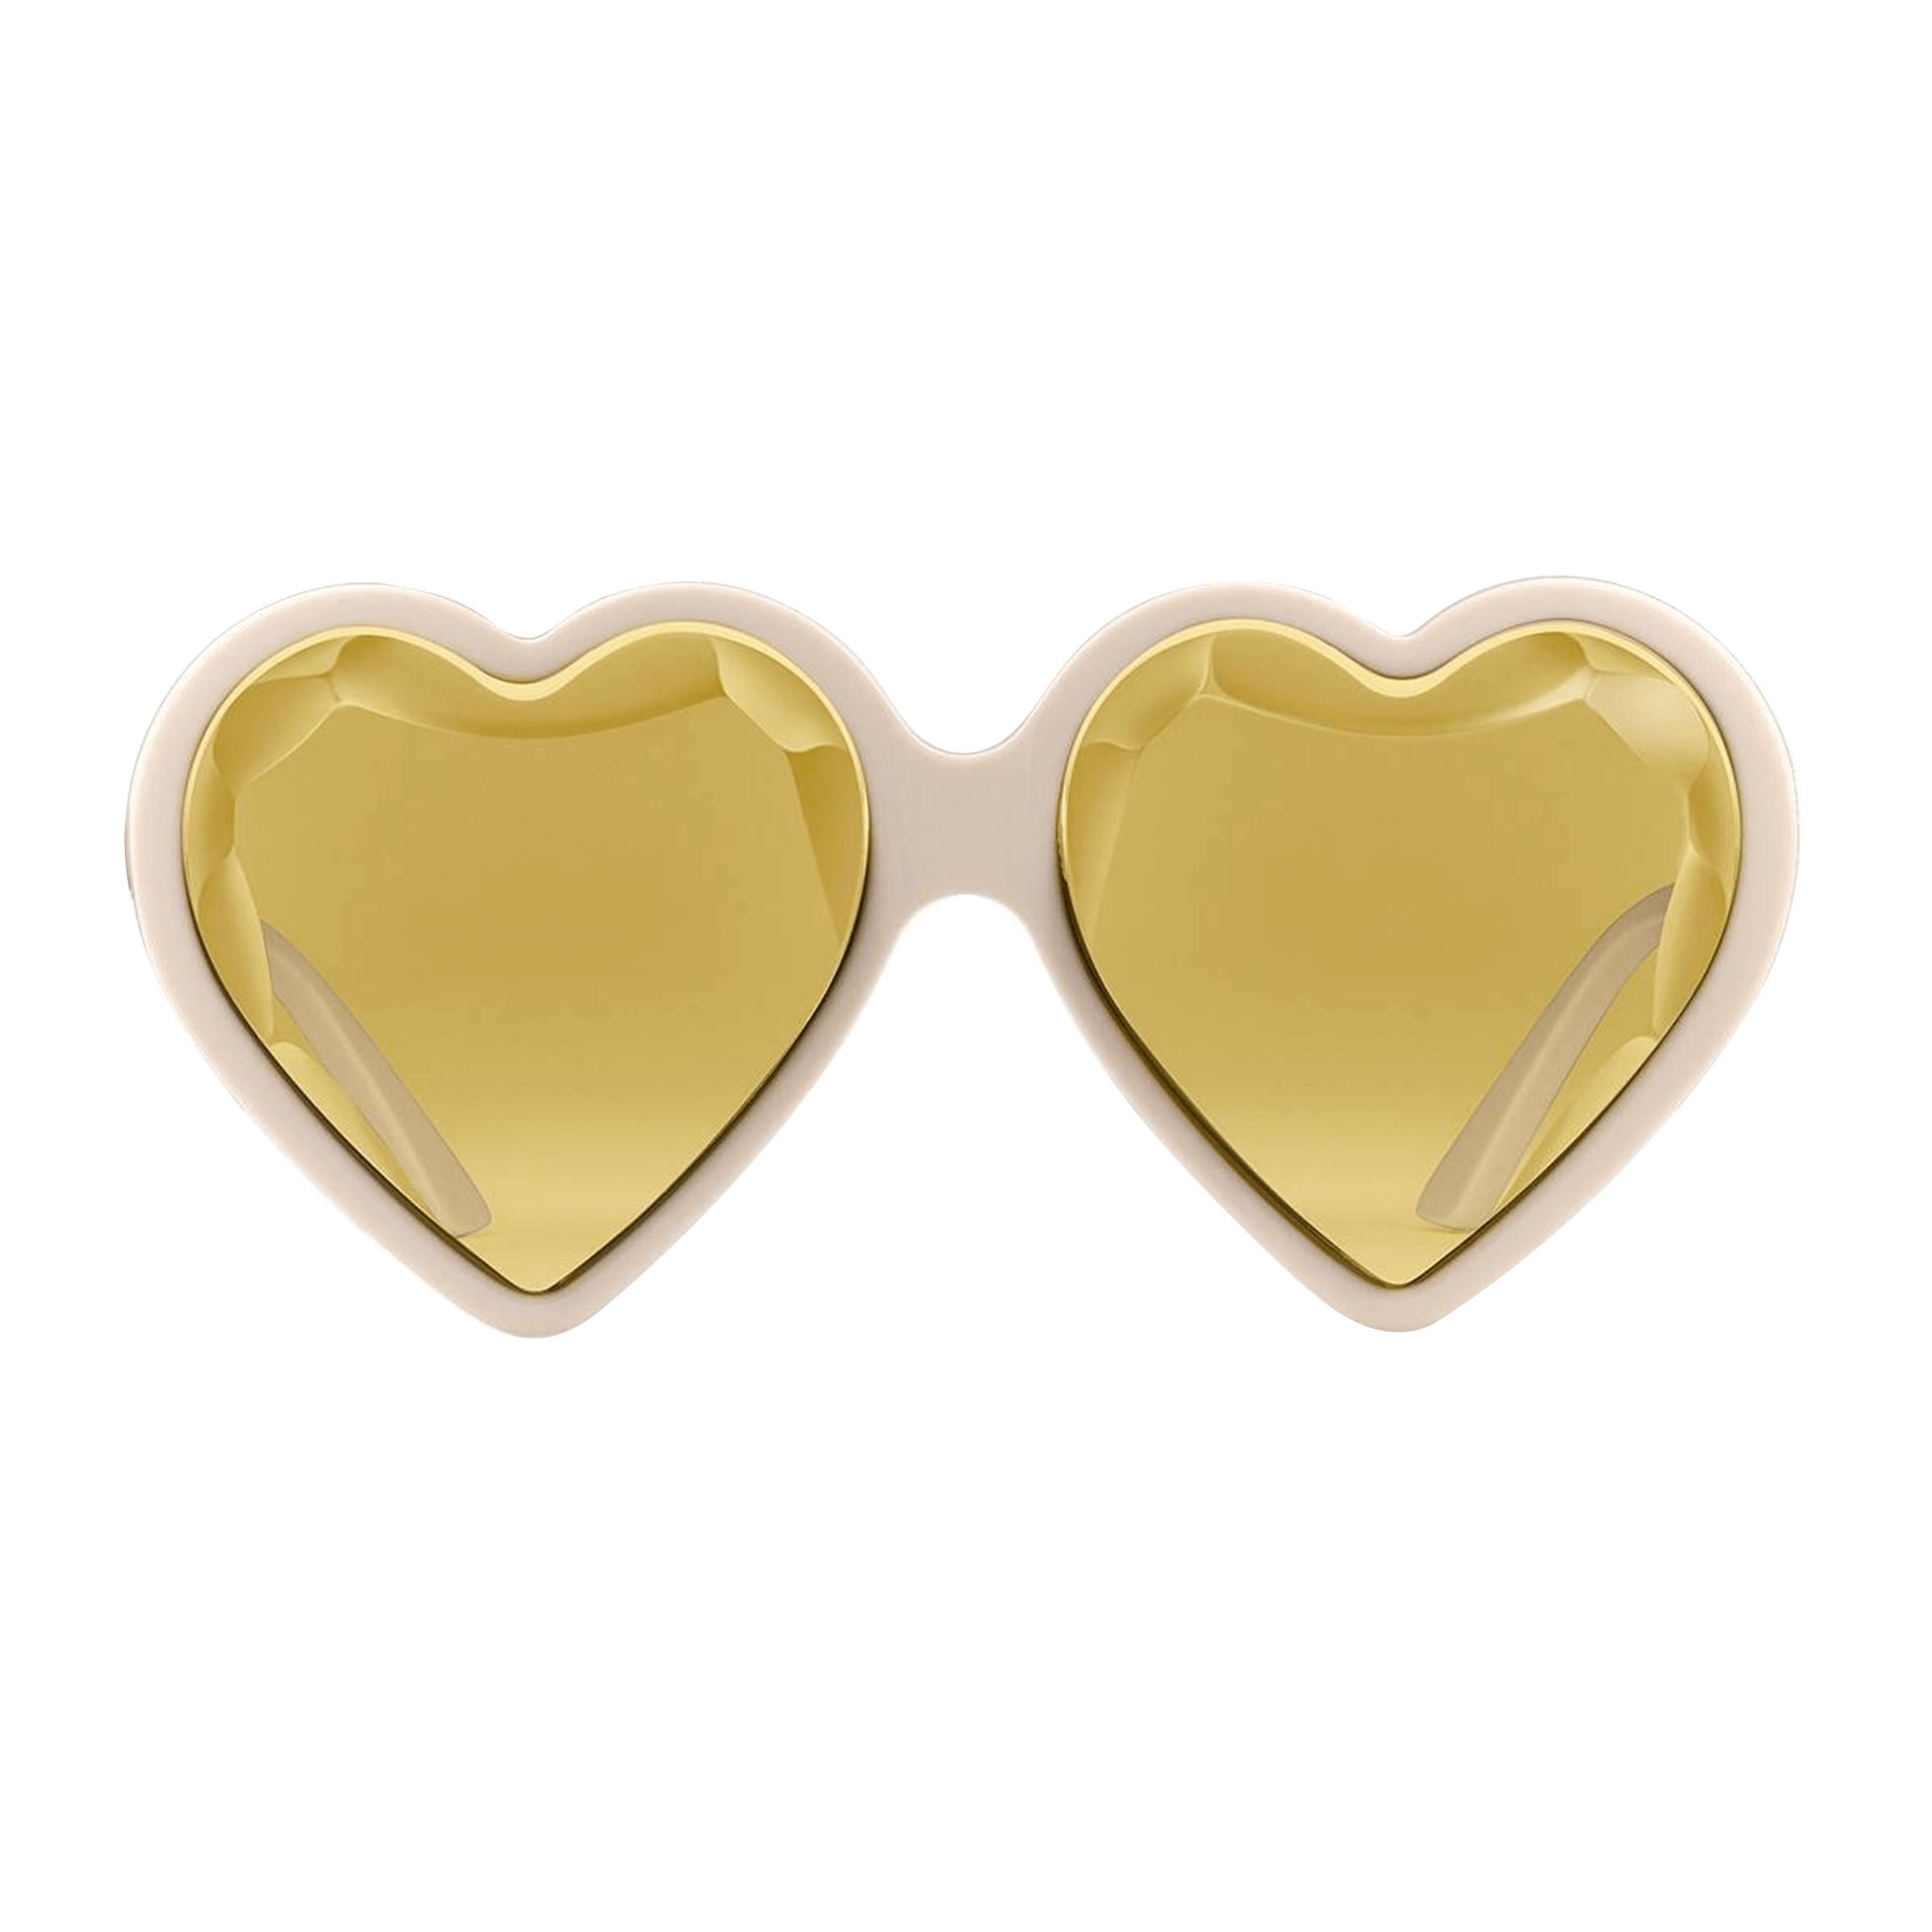 If had superpowers they. Clipart sunglasses heart shaped sunglasses